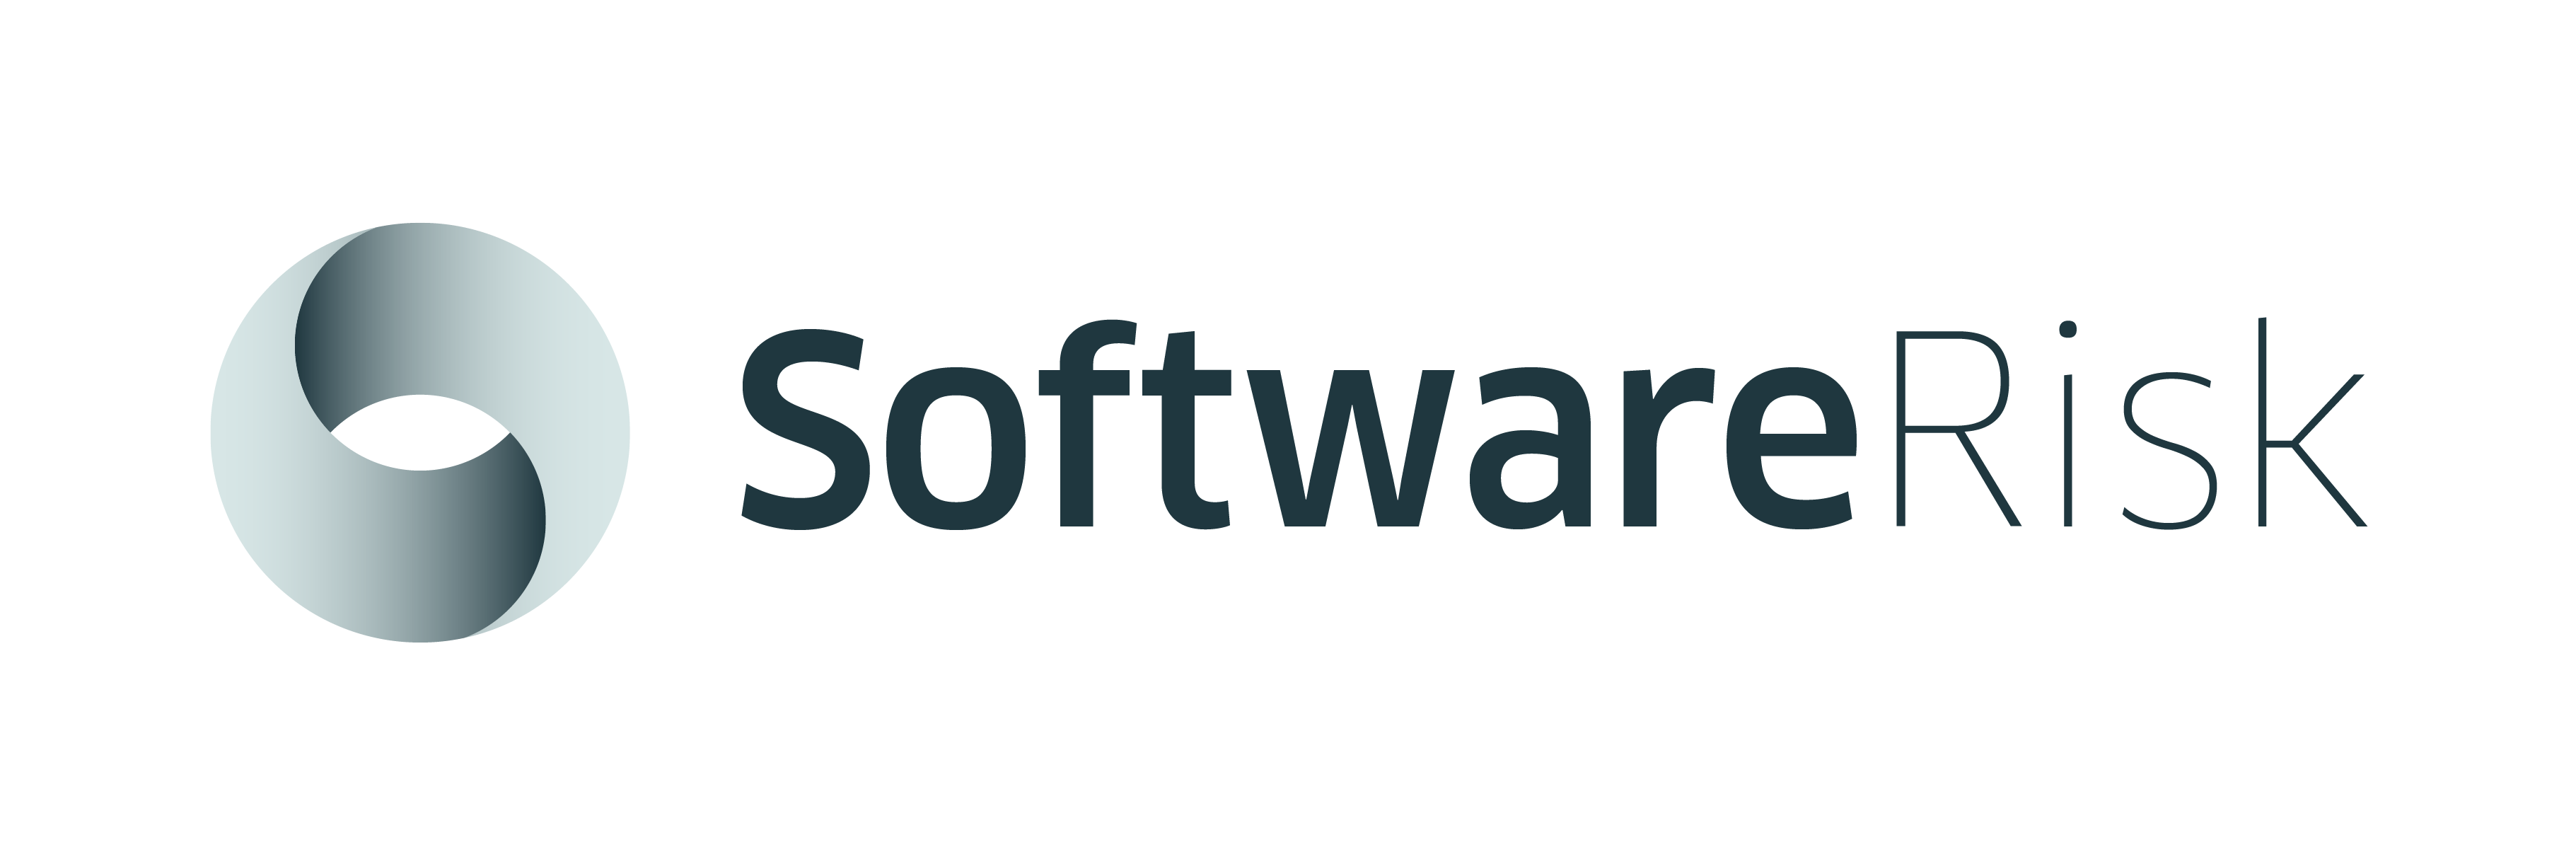 Software Risk logos_all versions-02